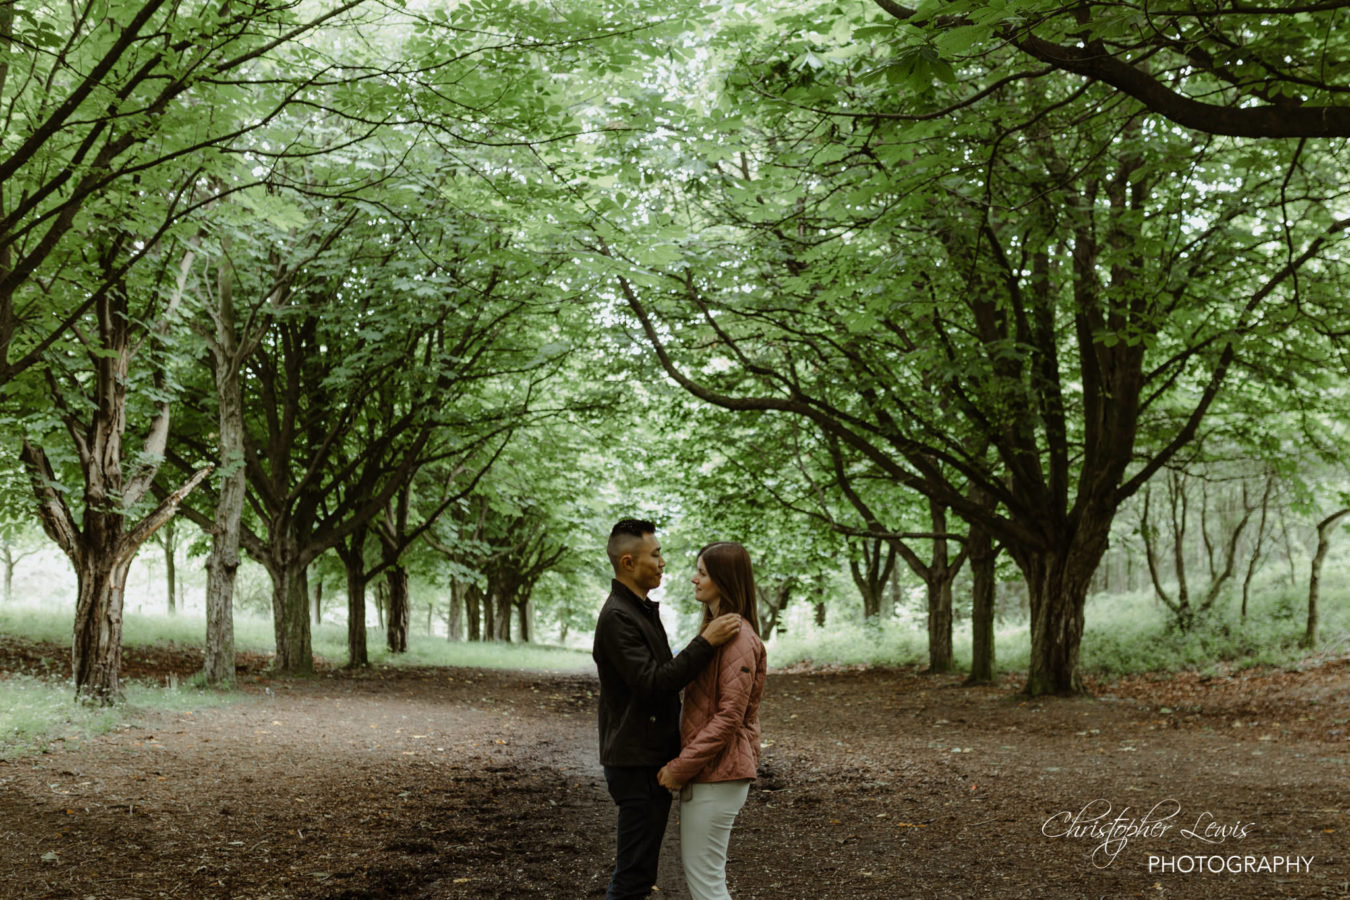 Cranage-Hall-Pre-Wedding-Photo-1